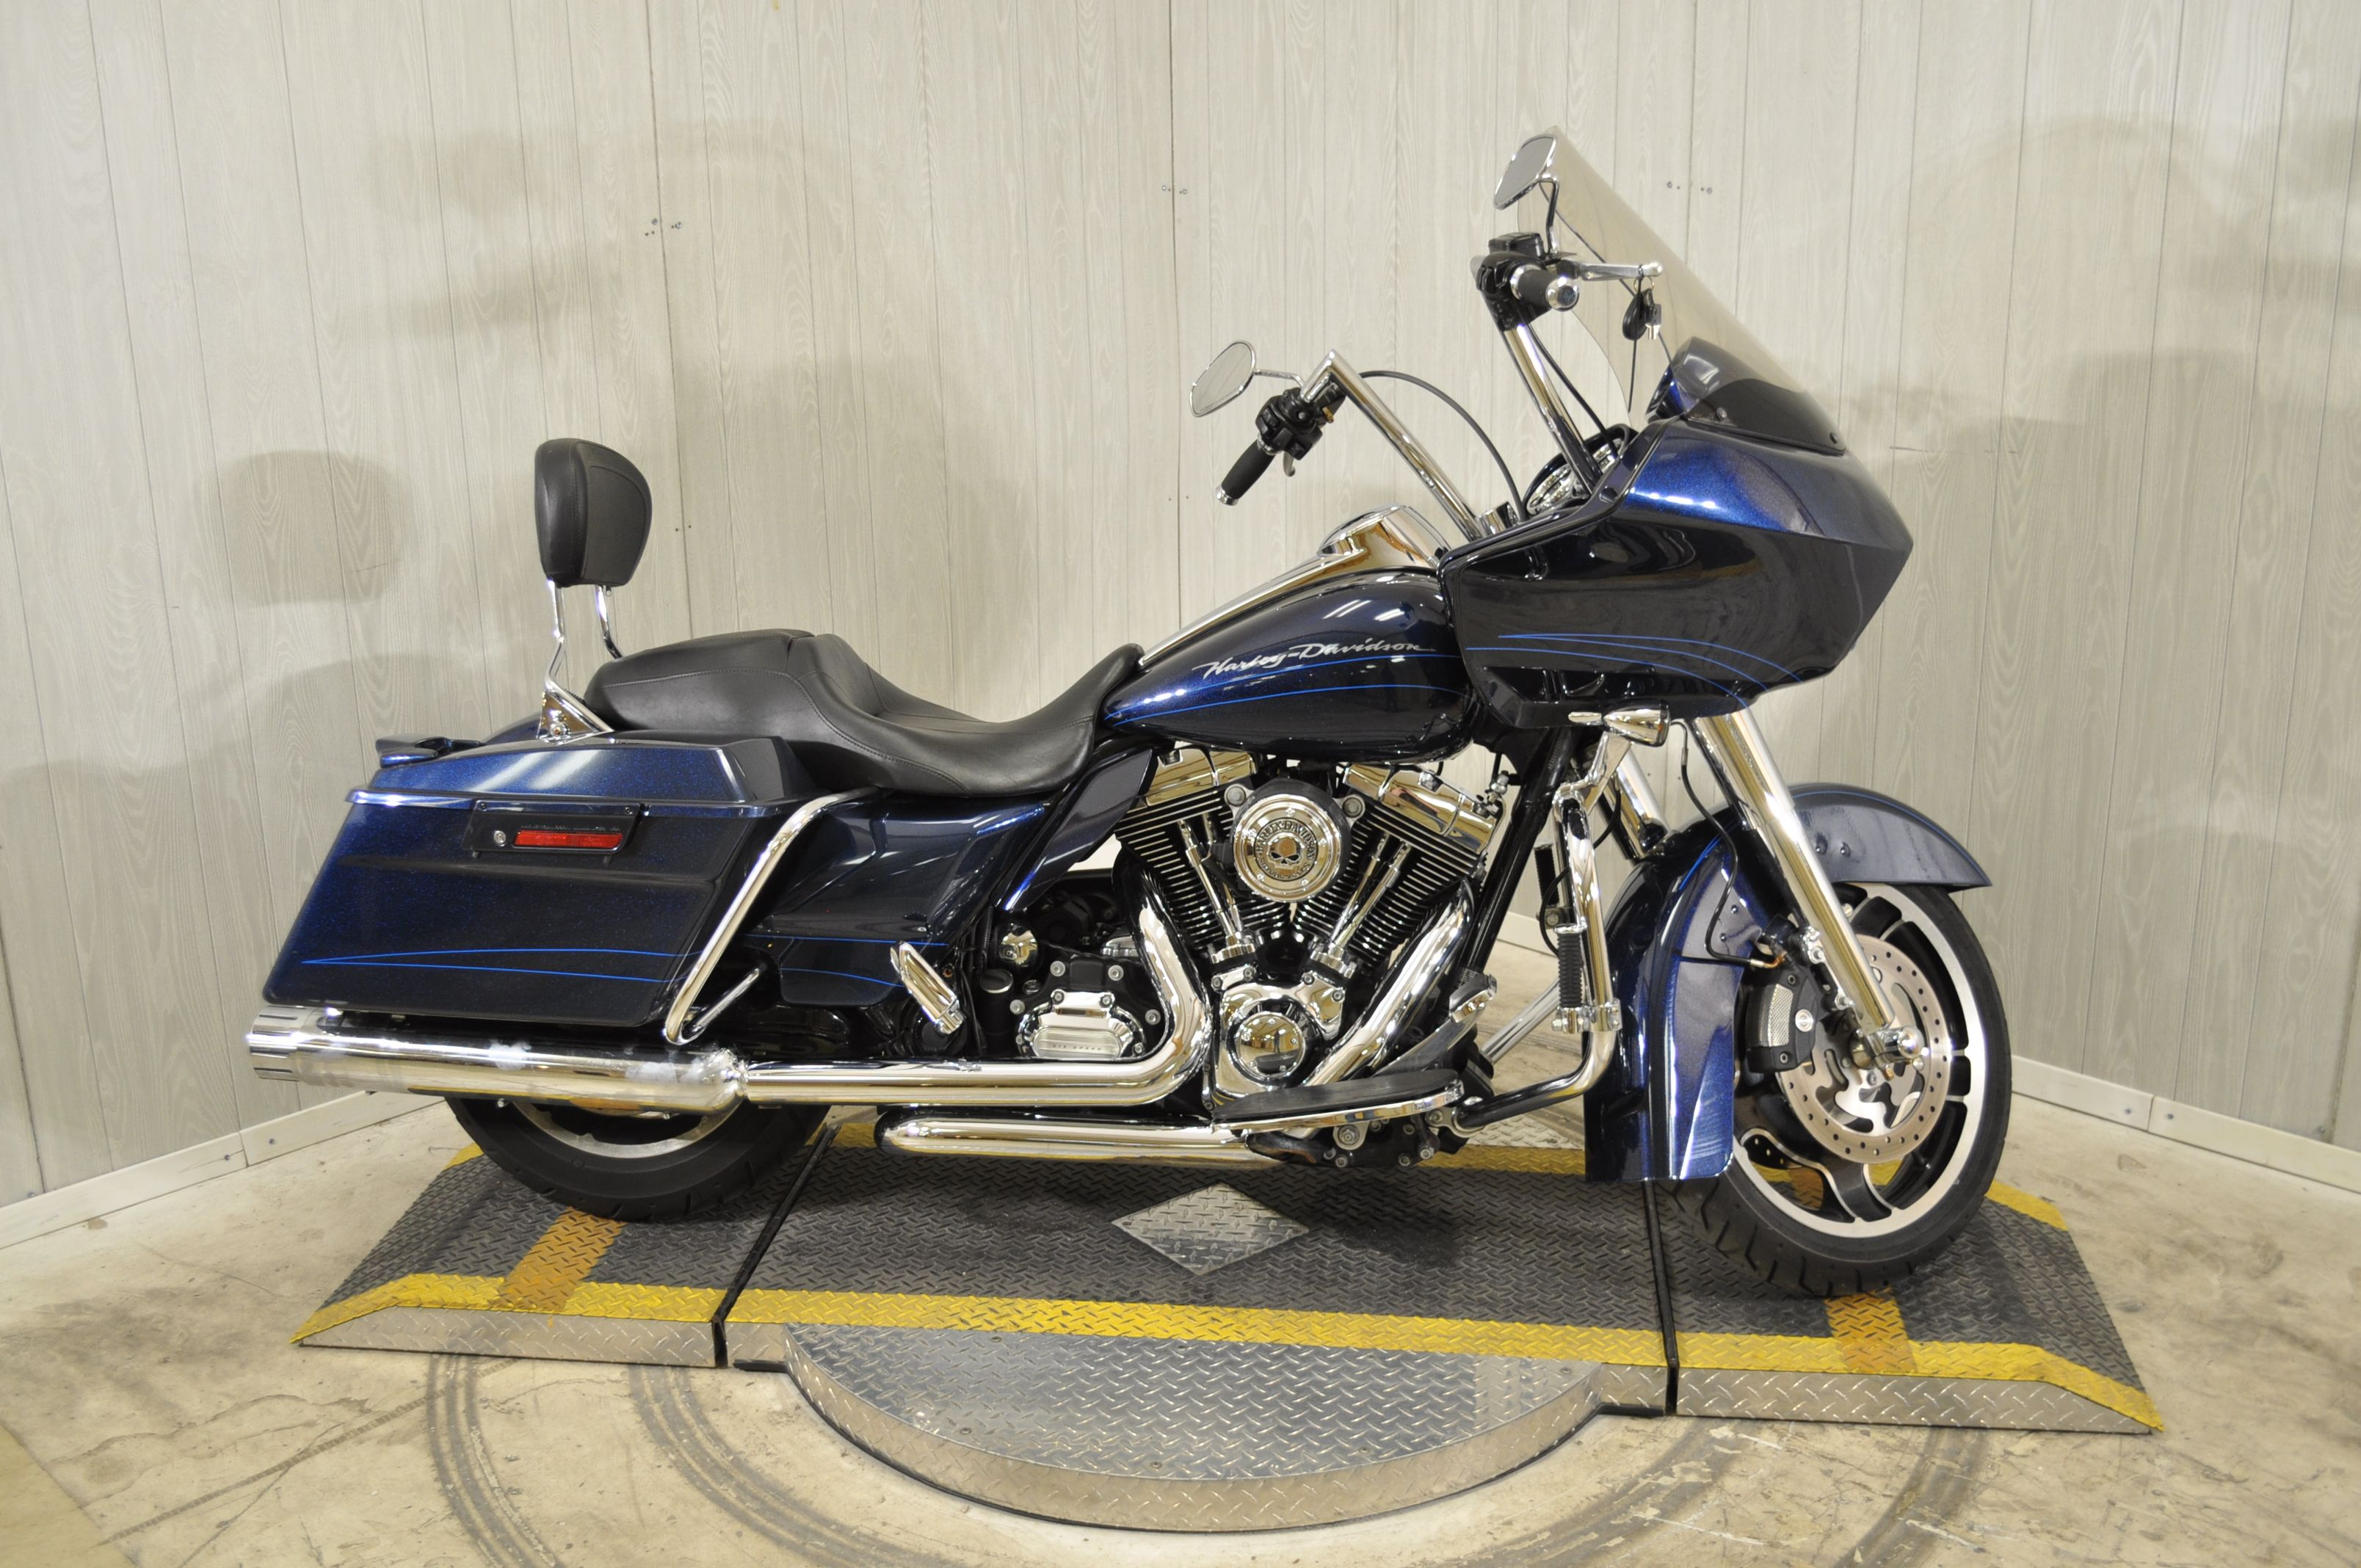 Pre Owned 2013 Harley Davidson Road Glide Custom Fltrx In Mobile Ap659621 Mobile Bay Harley Davidson